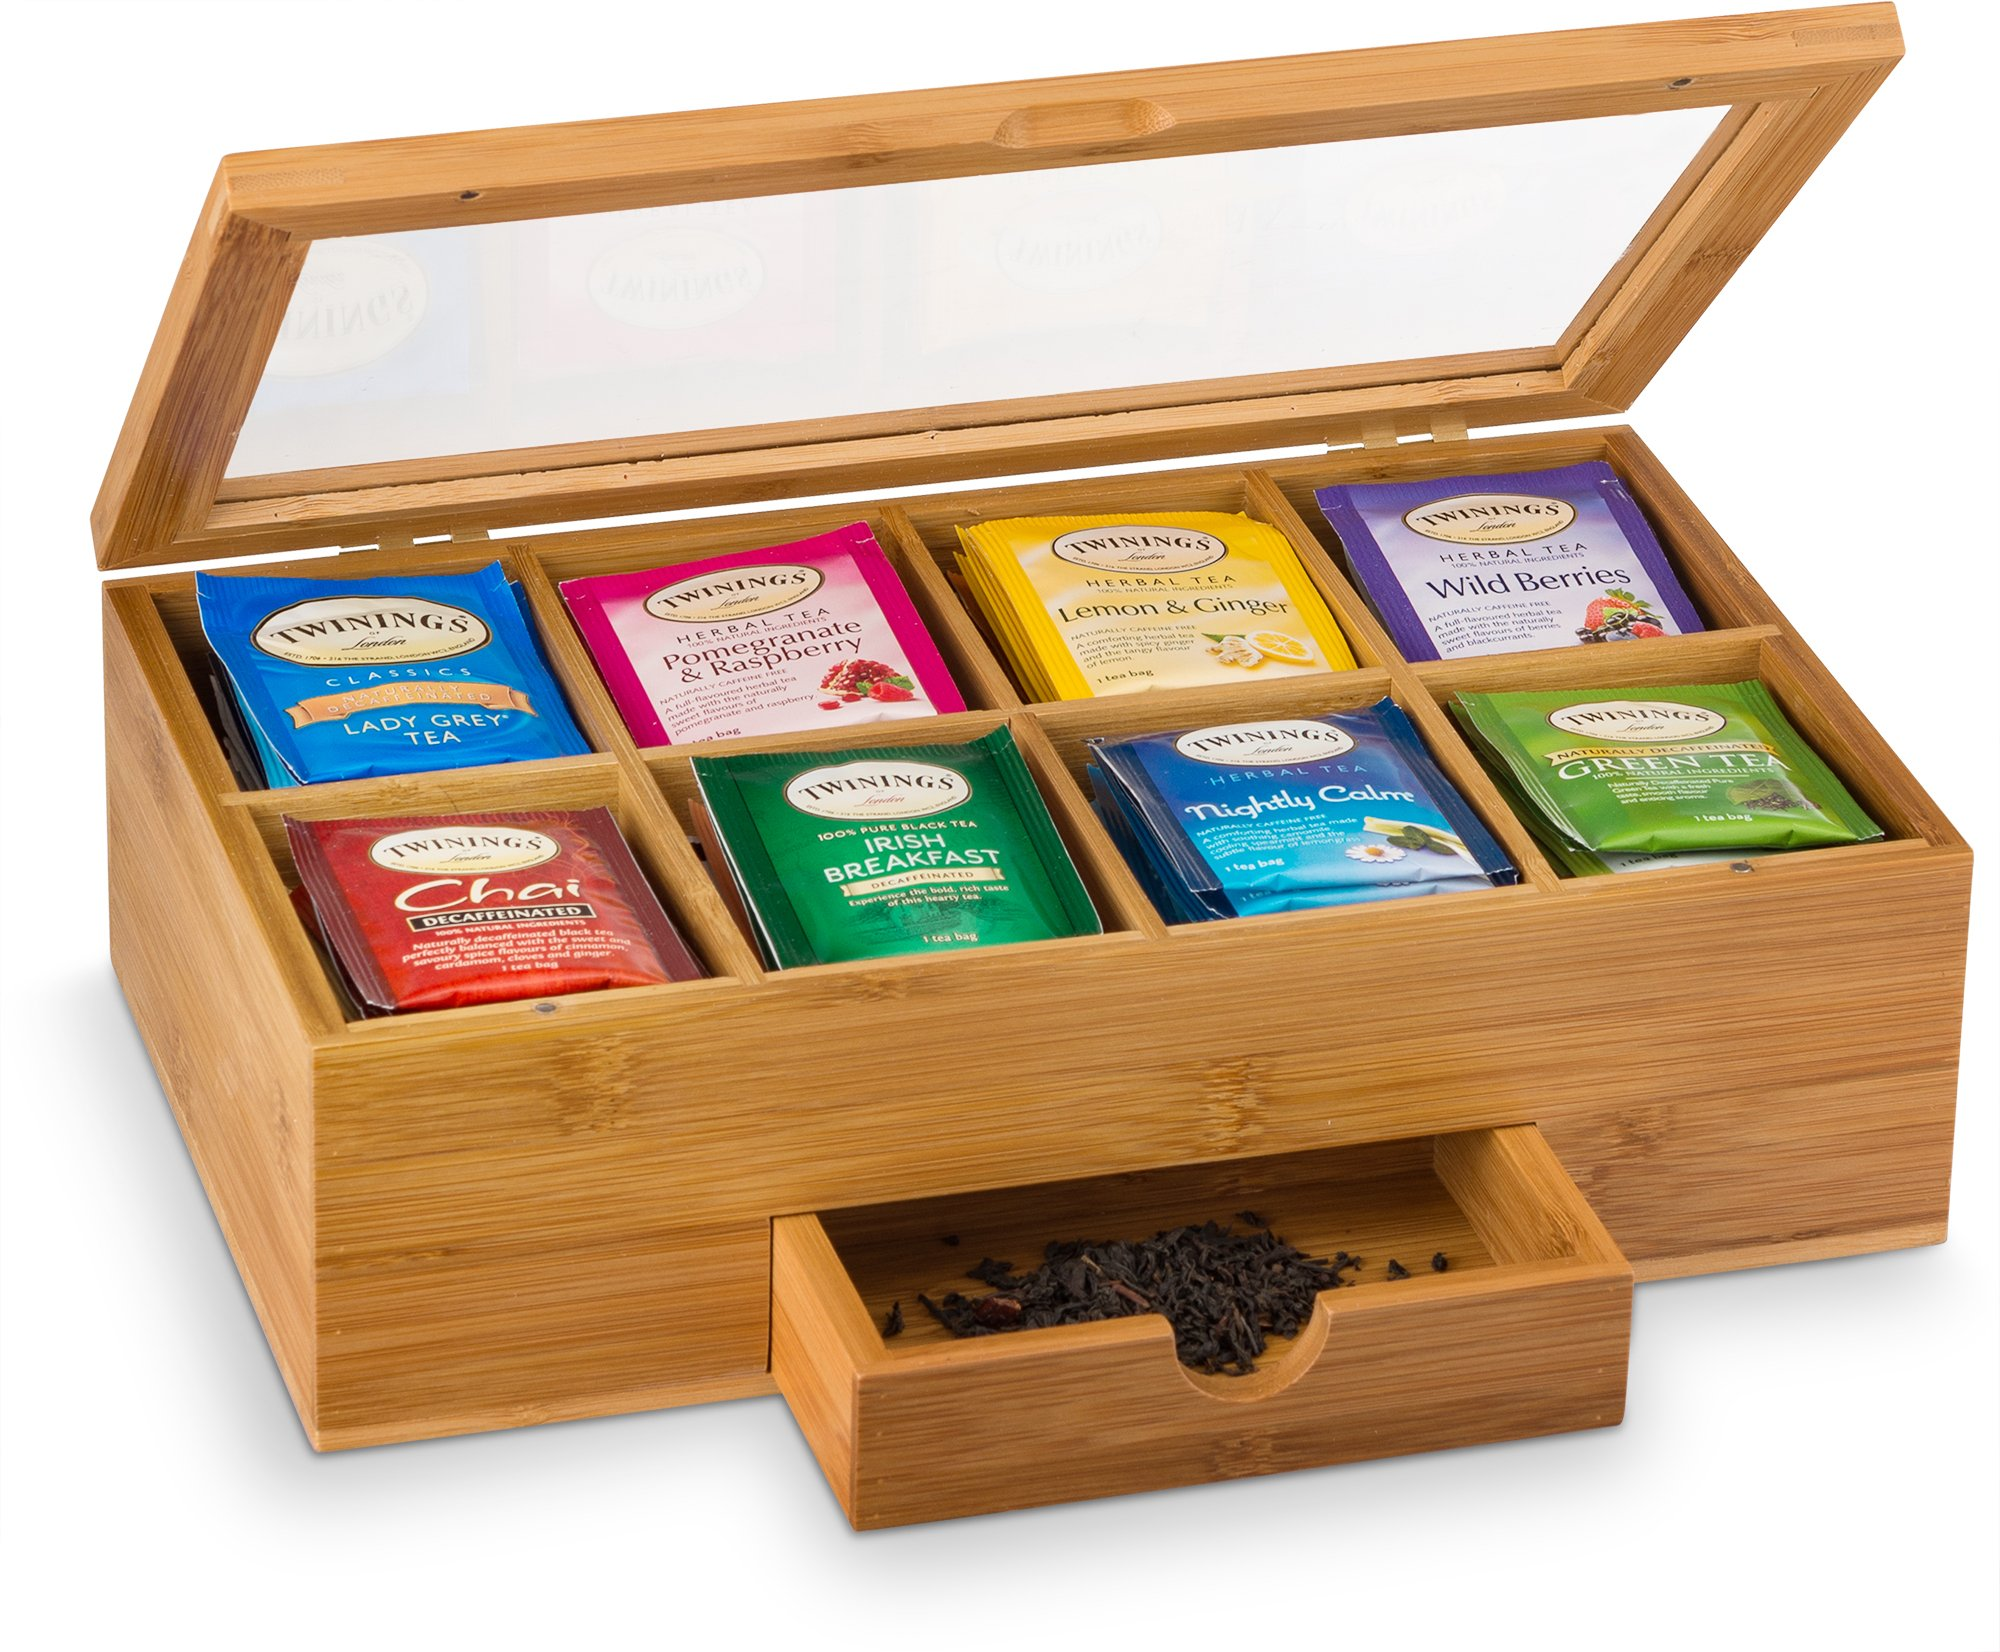 Premium Bamboo Tea Box Organizer - Natural Wood Teabag Holder Organizer - 8 Storage Compartment with Small Drawer - Great Gift Idea by Bambüsi